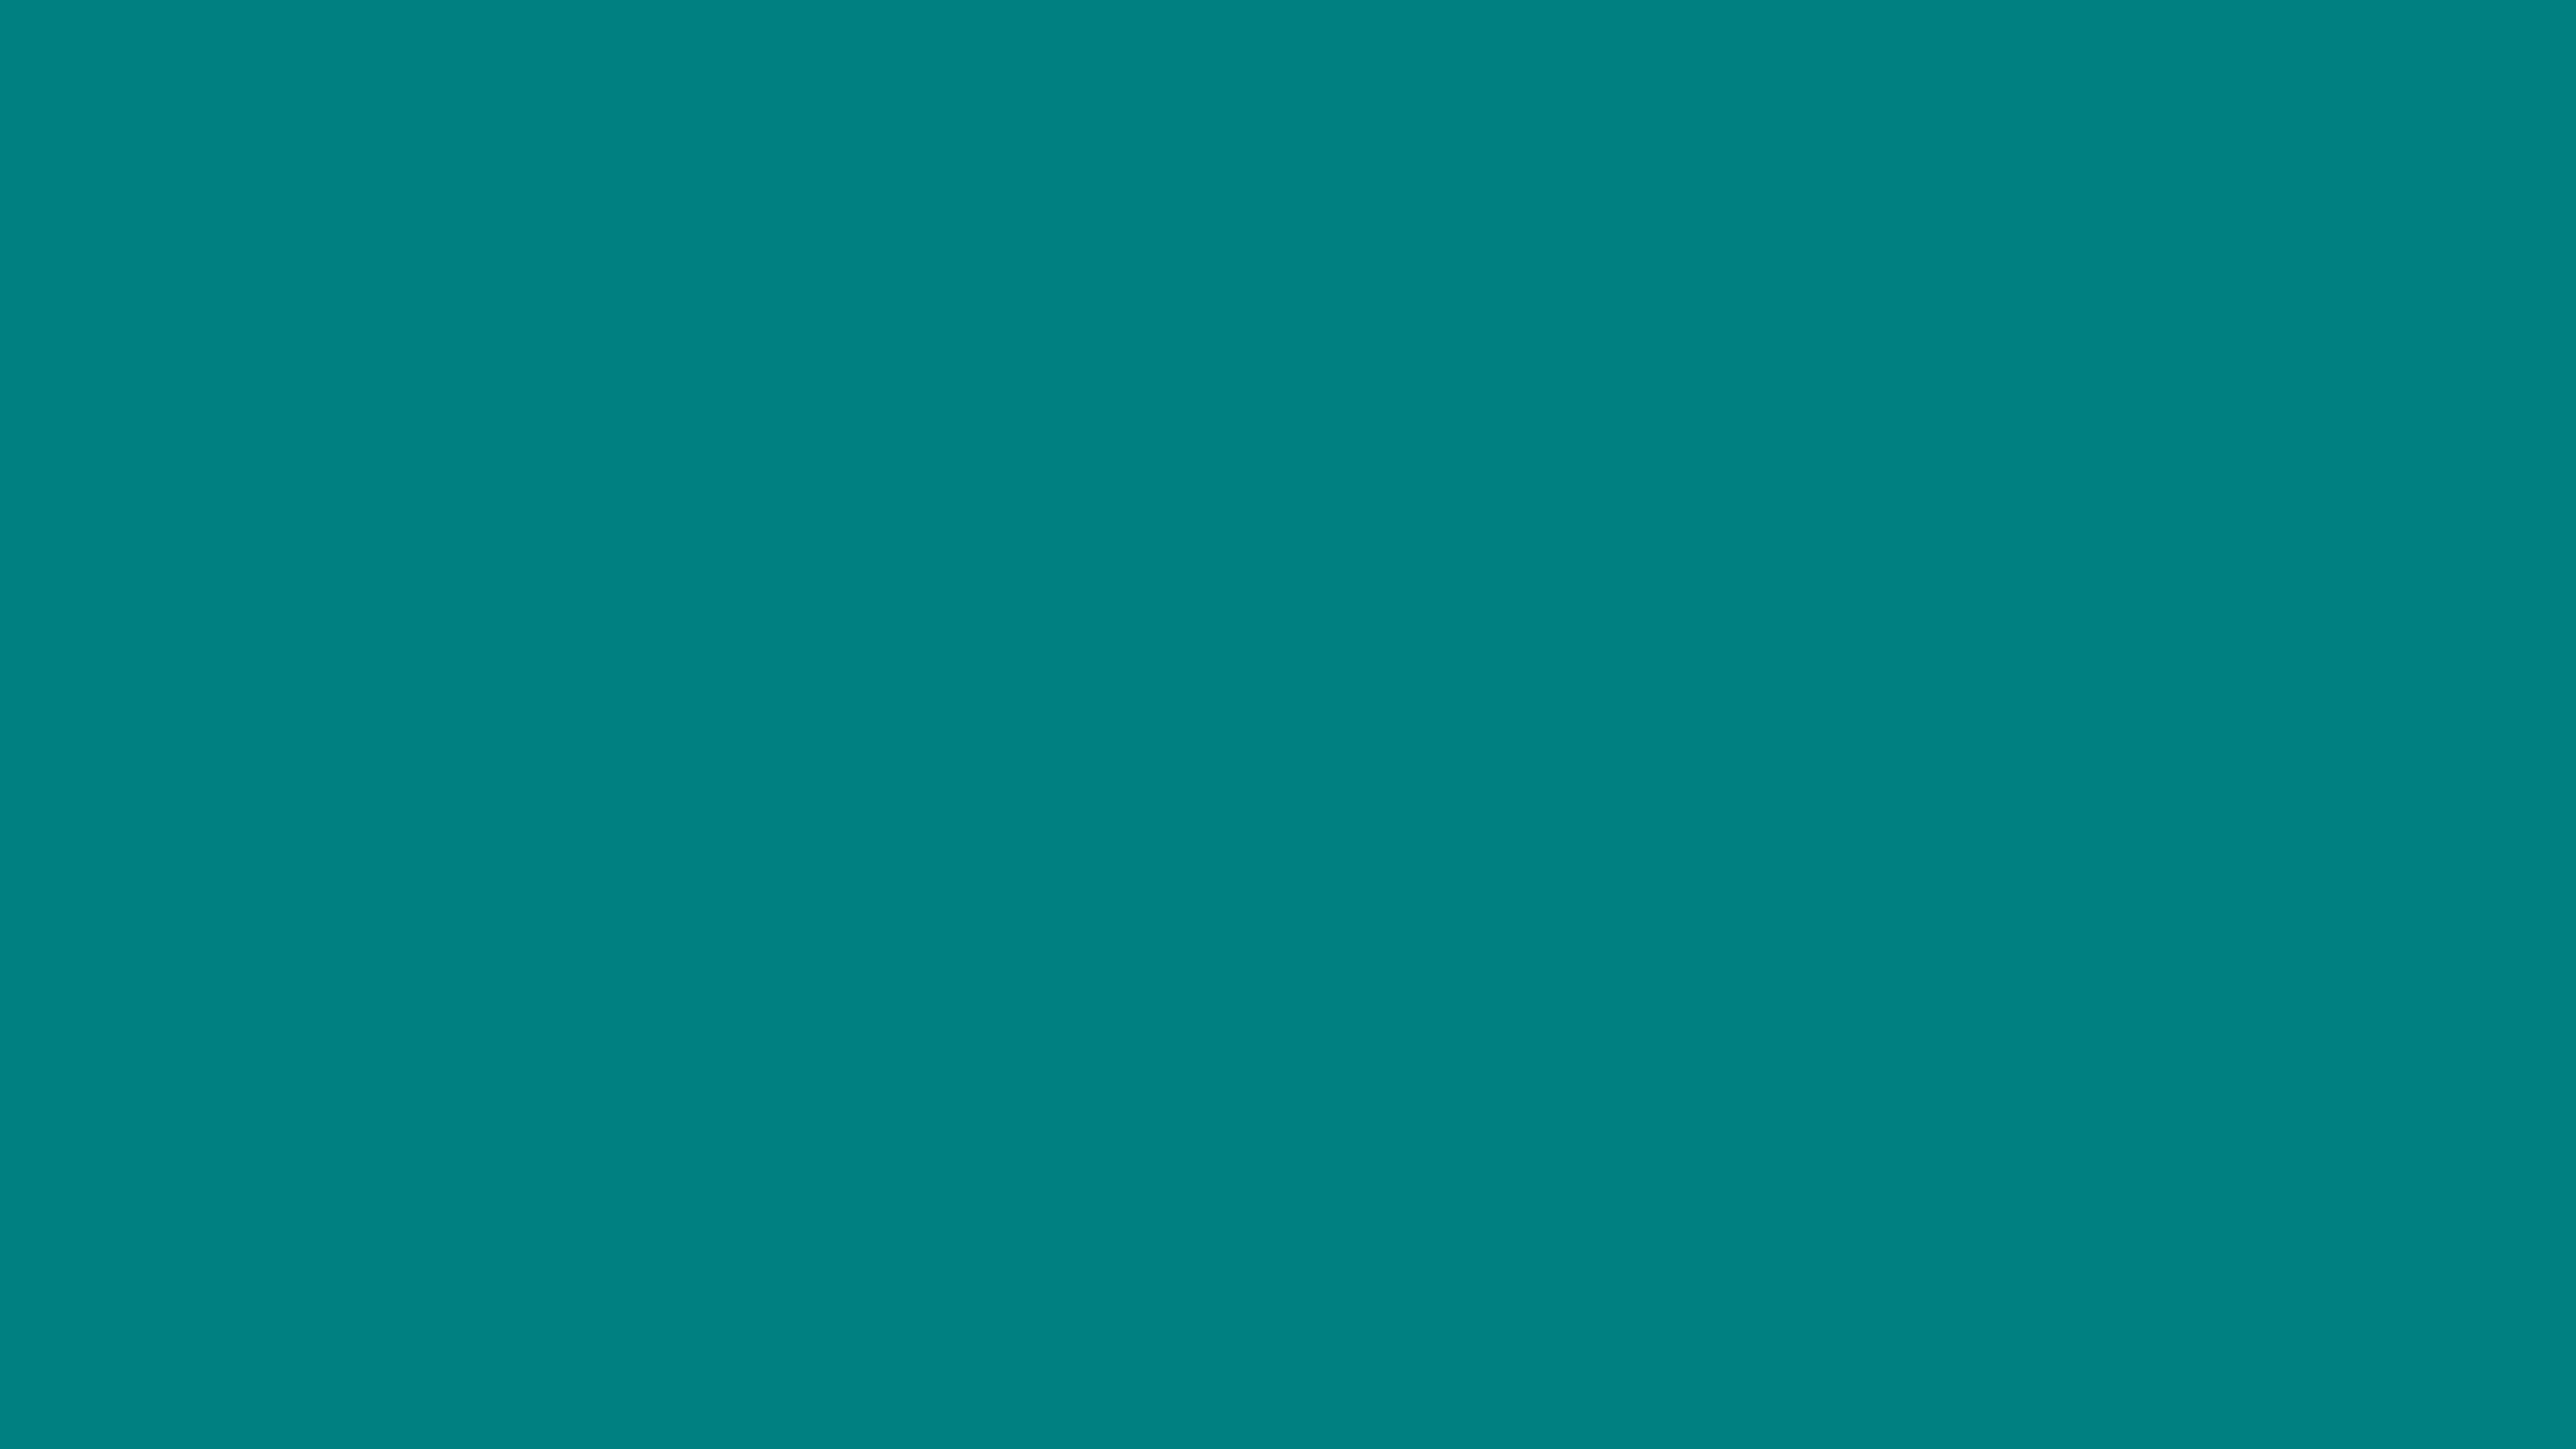 5120x2880 Teal Solid Color Background